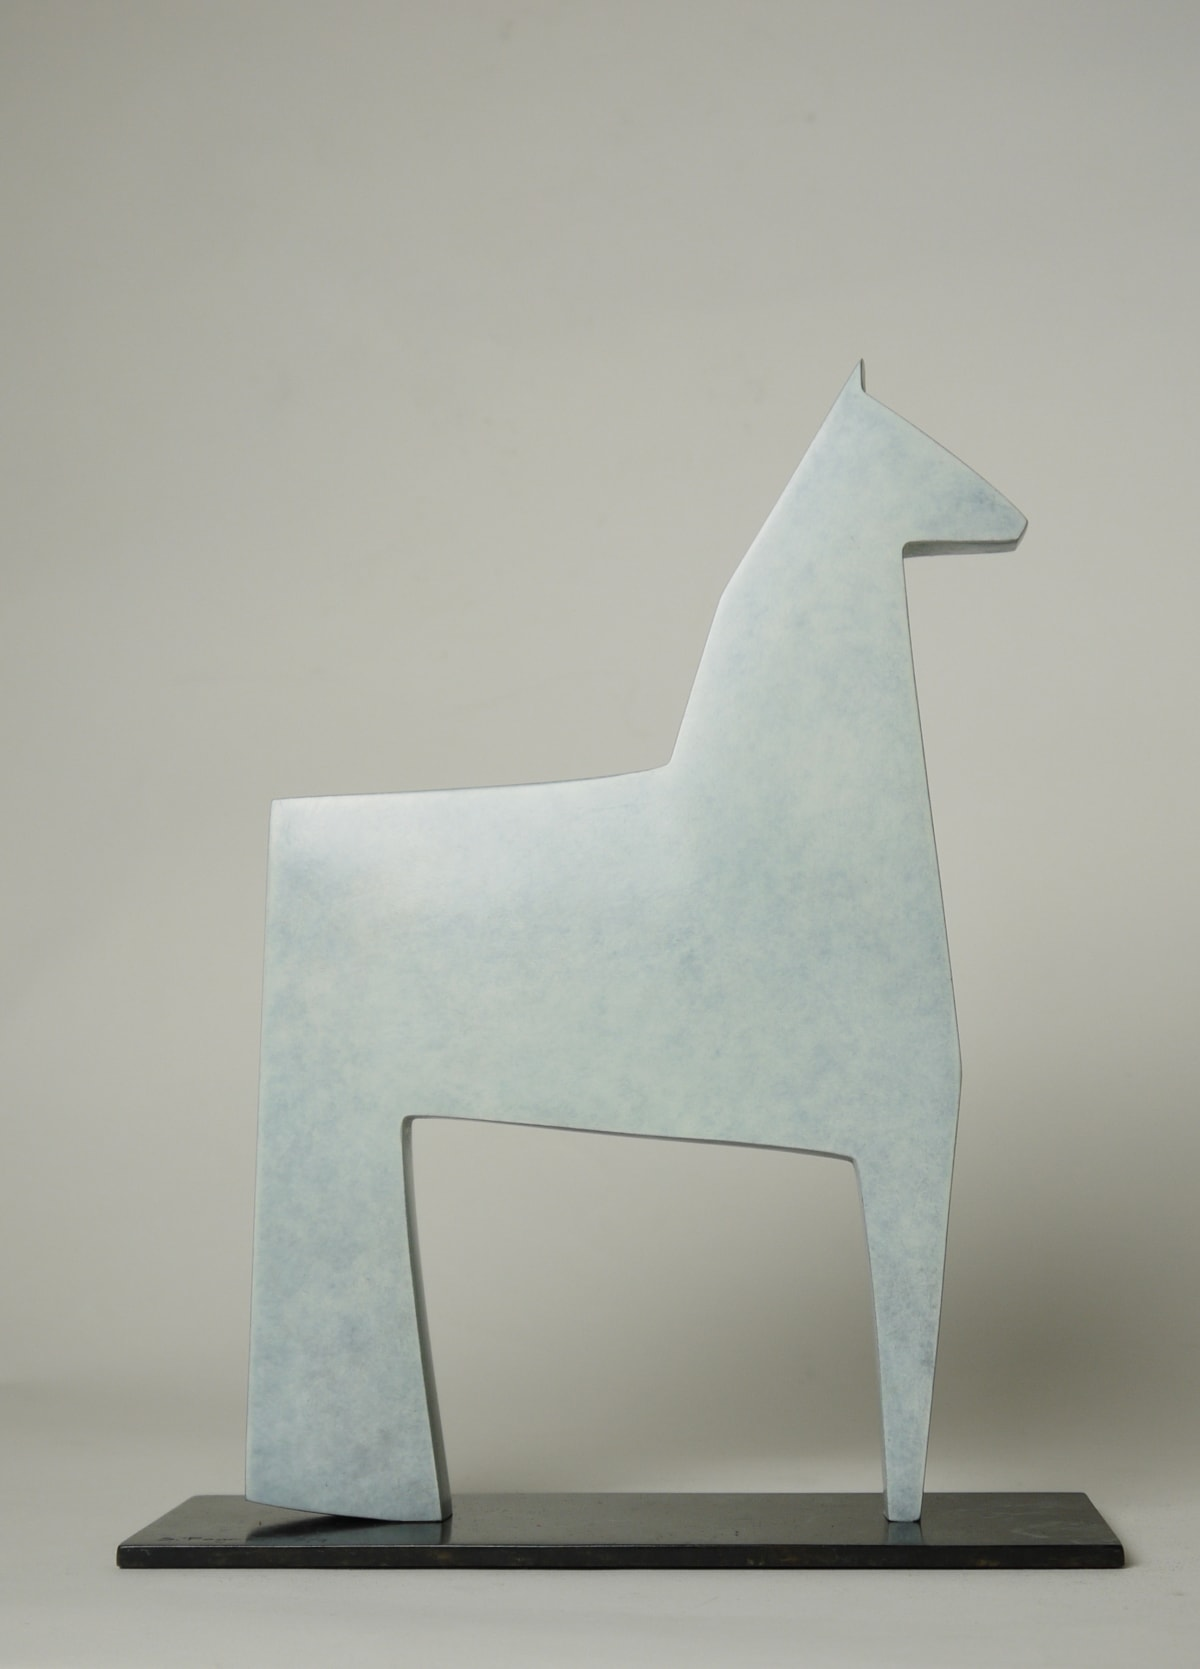 Stephen Page White Horse, 2018 Bronze Sculpture 29 x 21 x 7 cm 11 3/8 x 8 1/4 x 2 3/4 in Edition 6 of 9